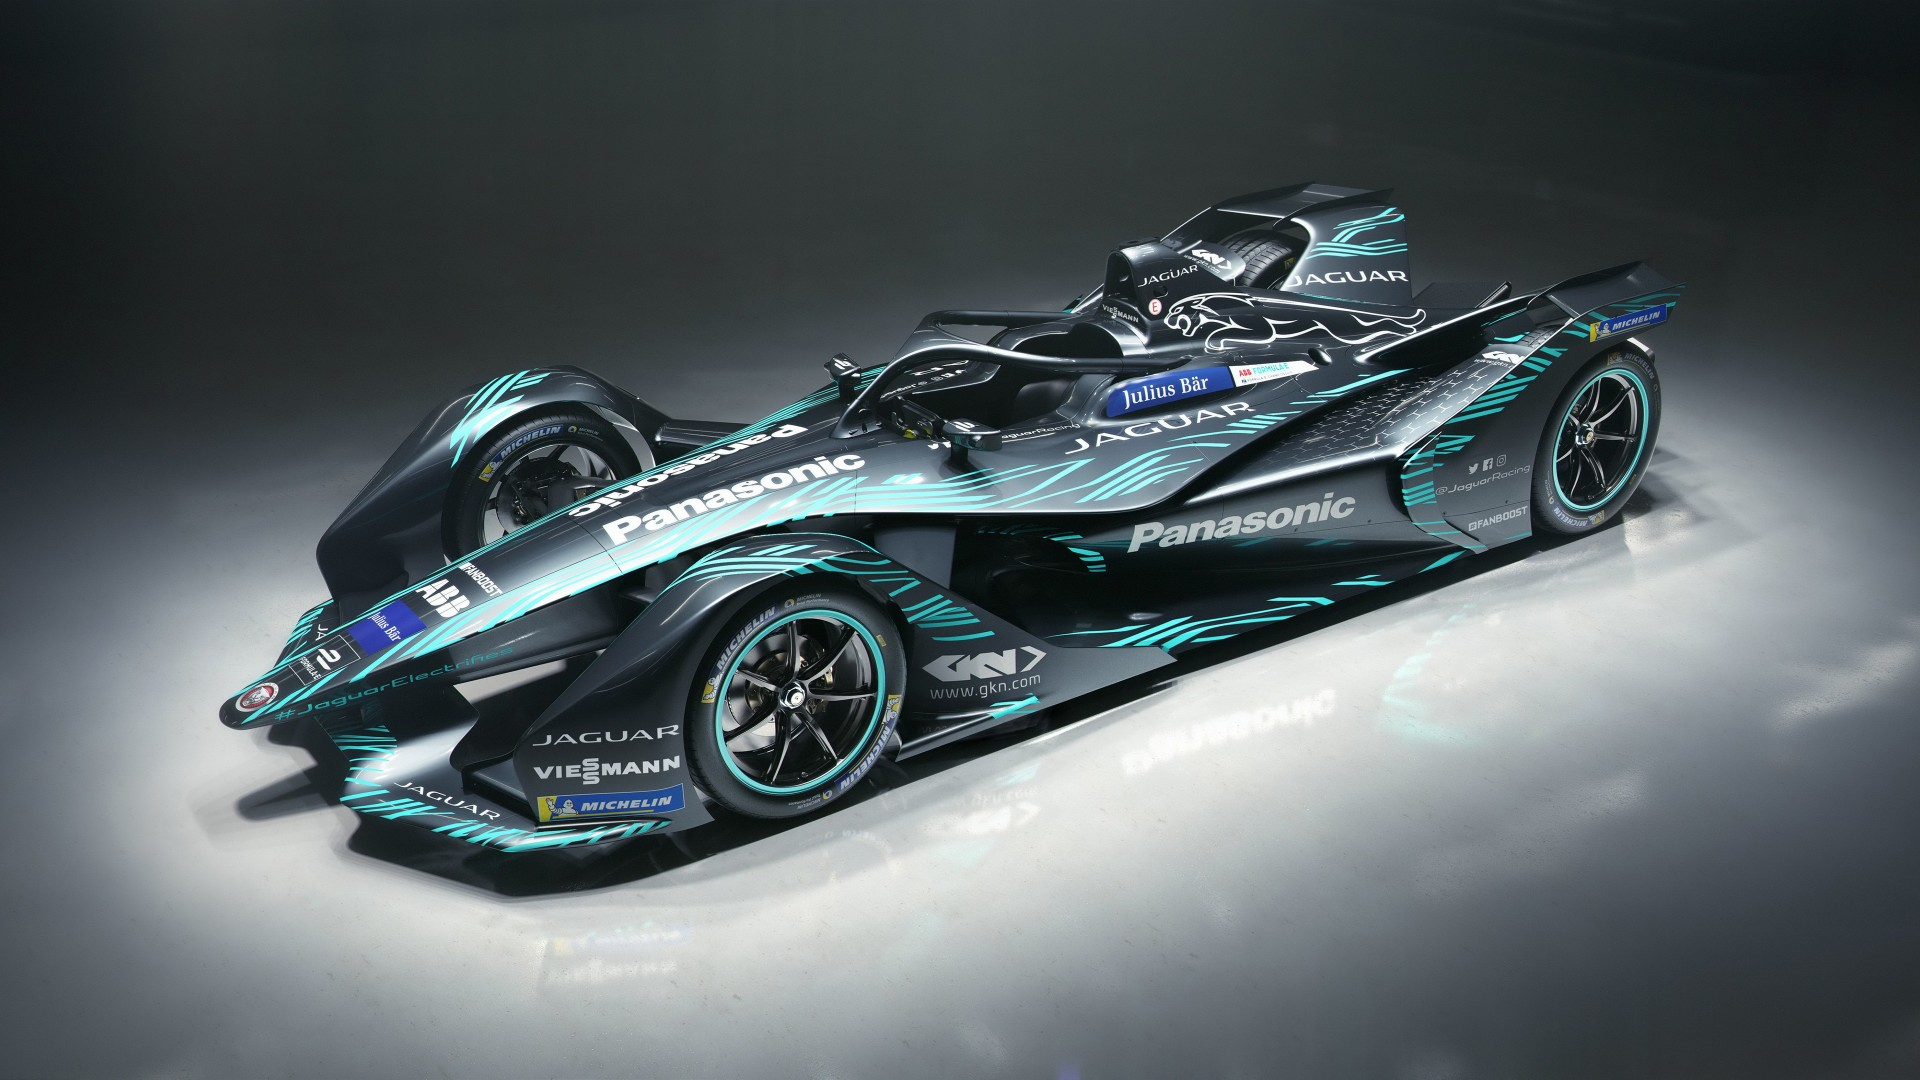 Jaguar I Type Electric Formula E Car 4k Iphone 7 Plus Iphone 8